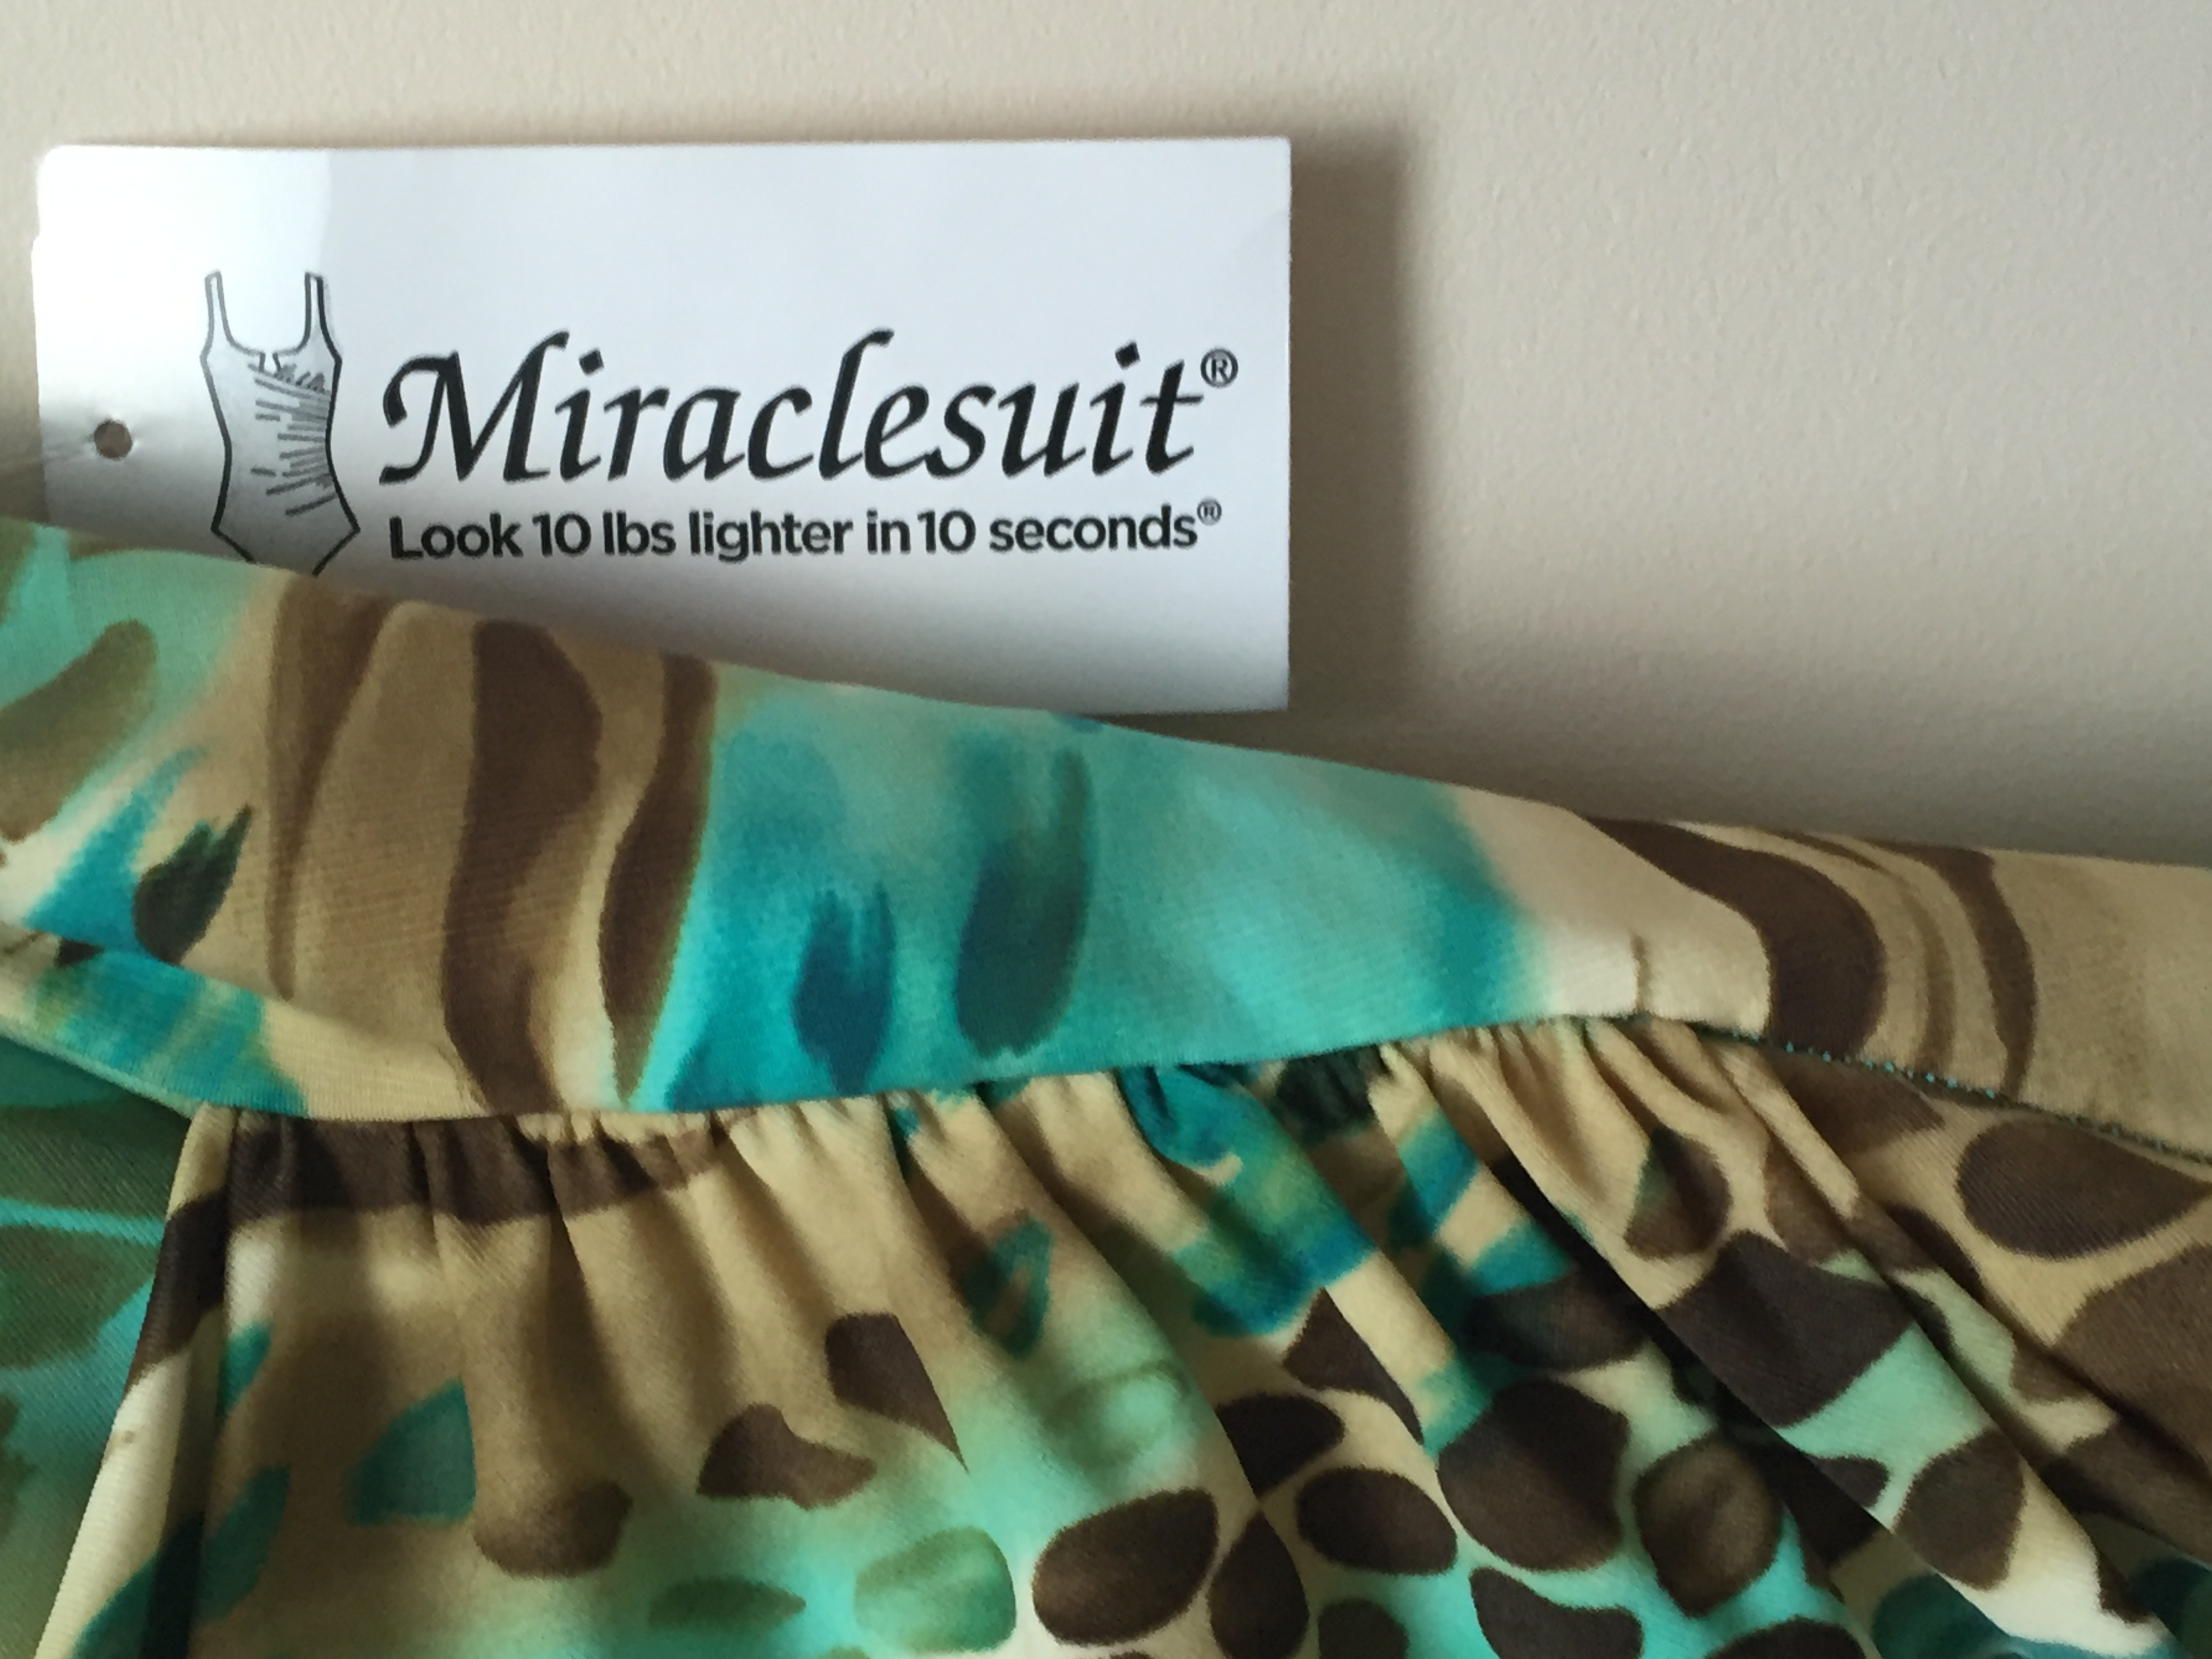 Miraclesuit swimming costume from Patricia-Eve